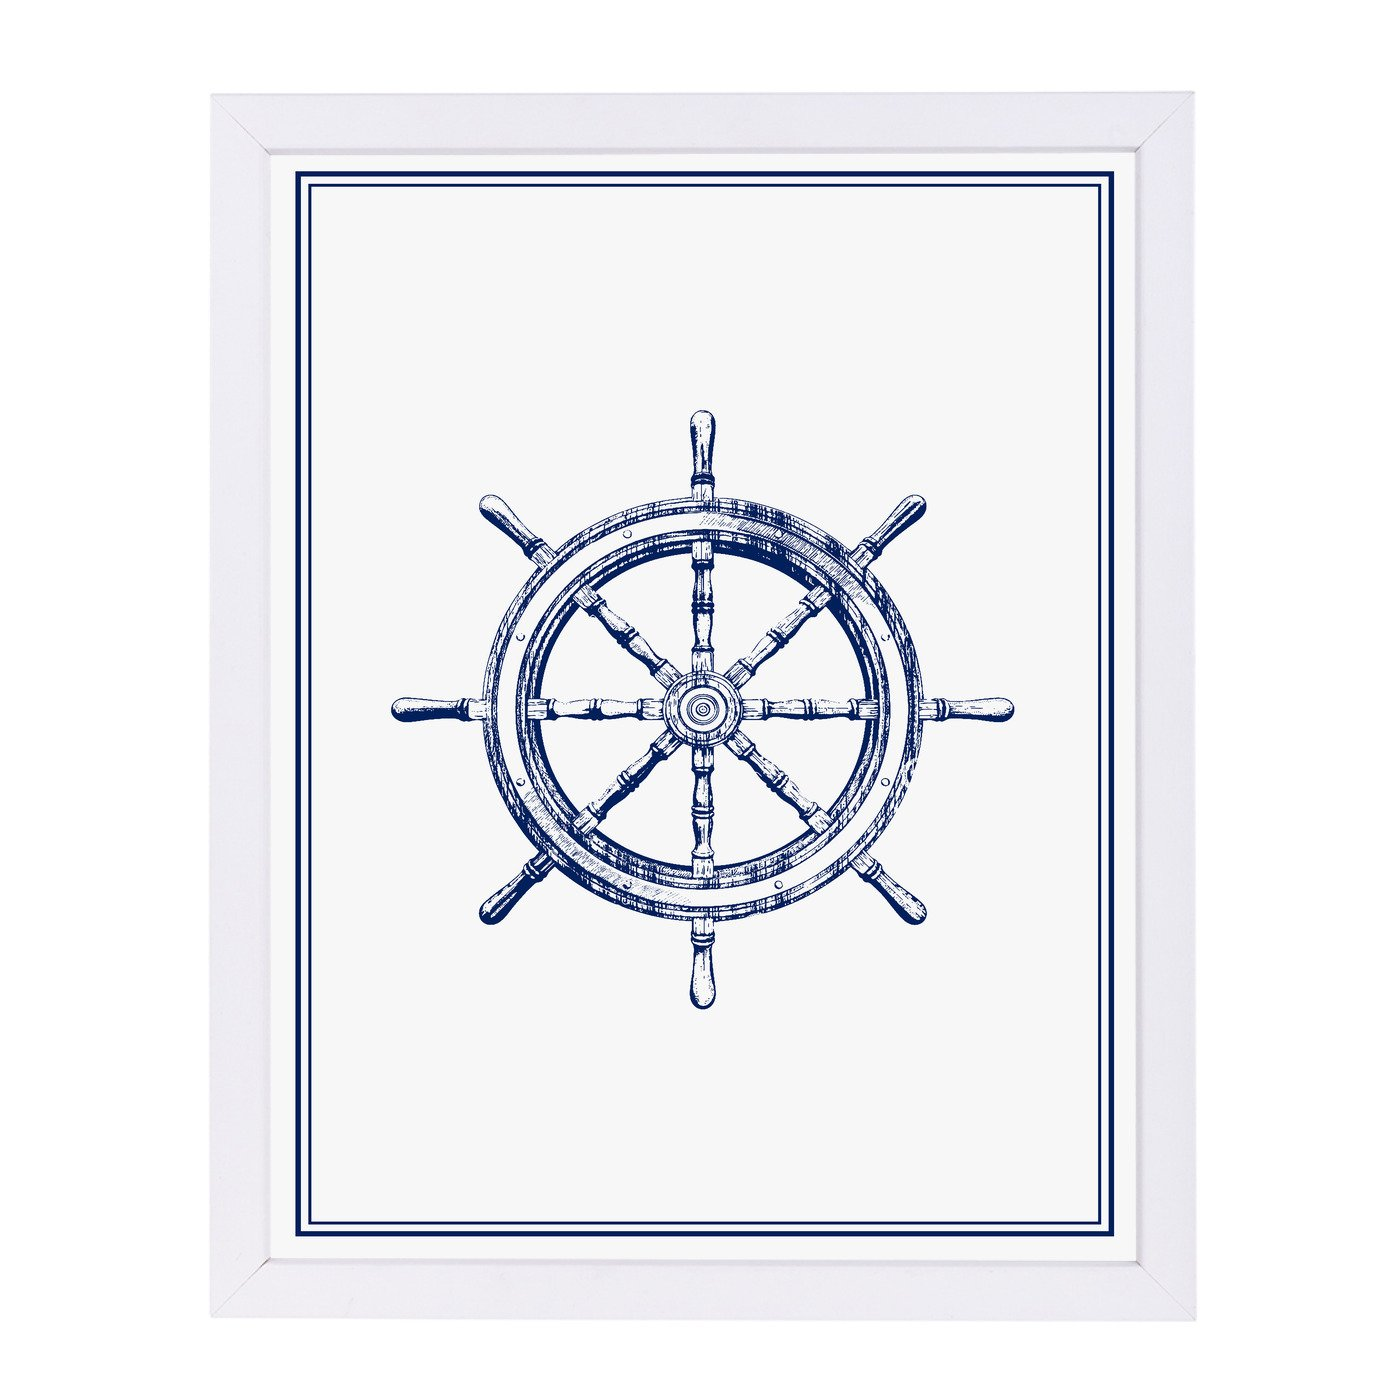 Ship Wheel By Nuada - Framed Print - Americanflat